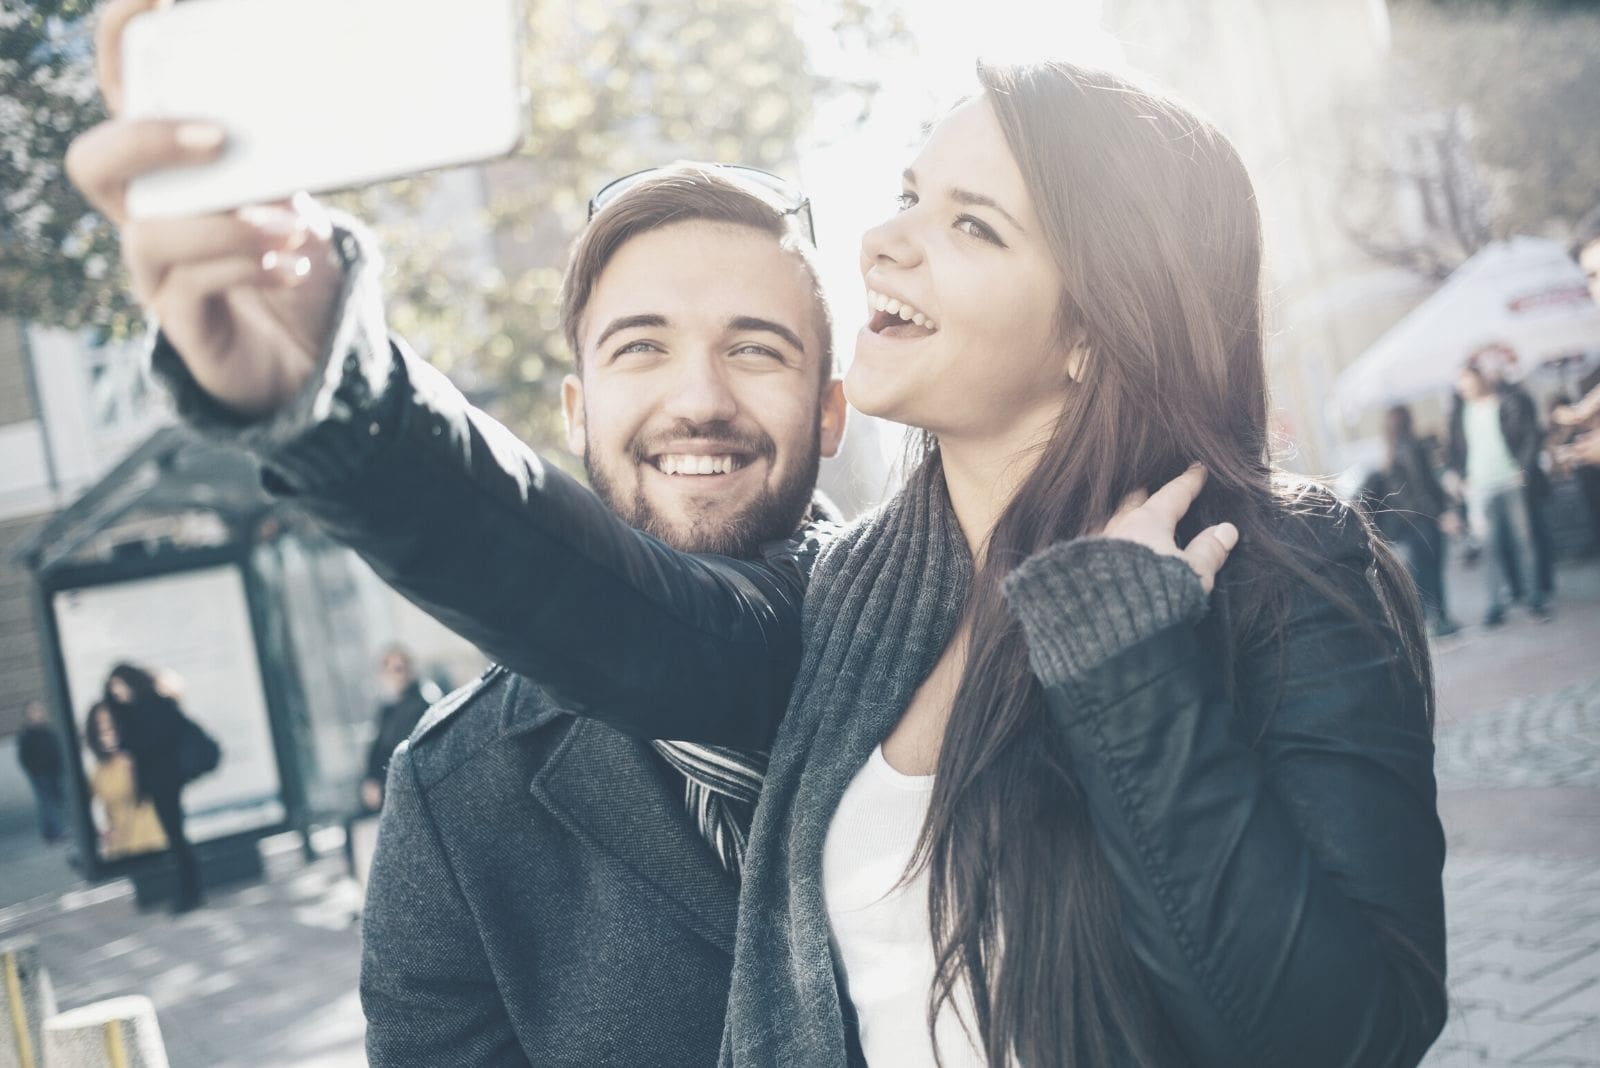 man and woman making selfie on her smartphone while walking outdoors